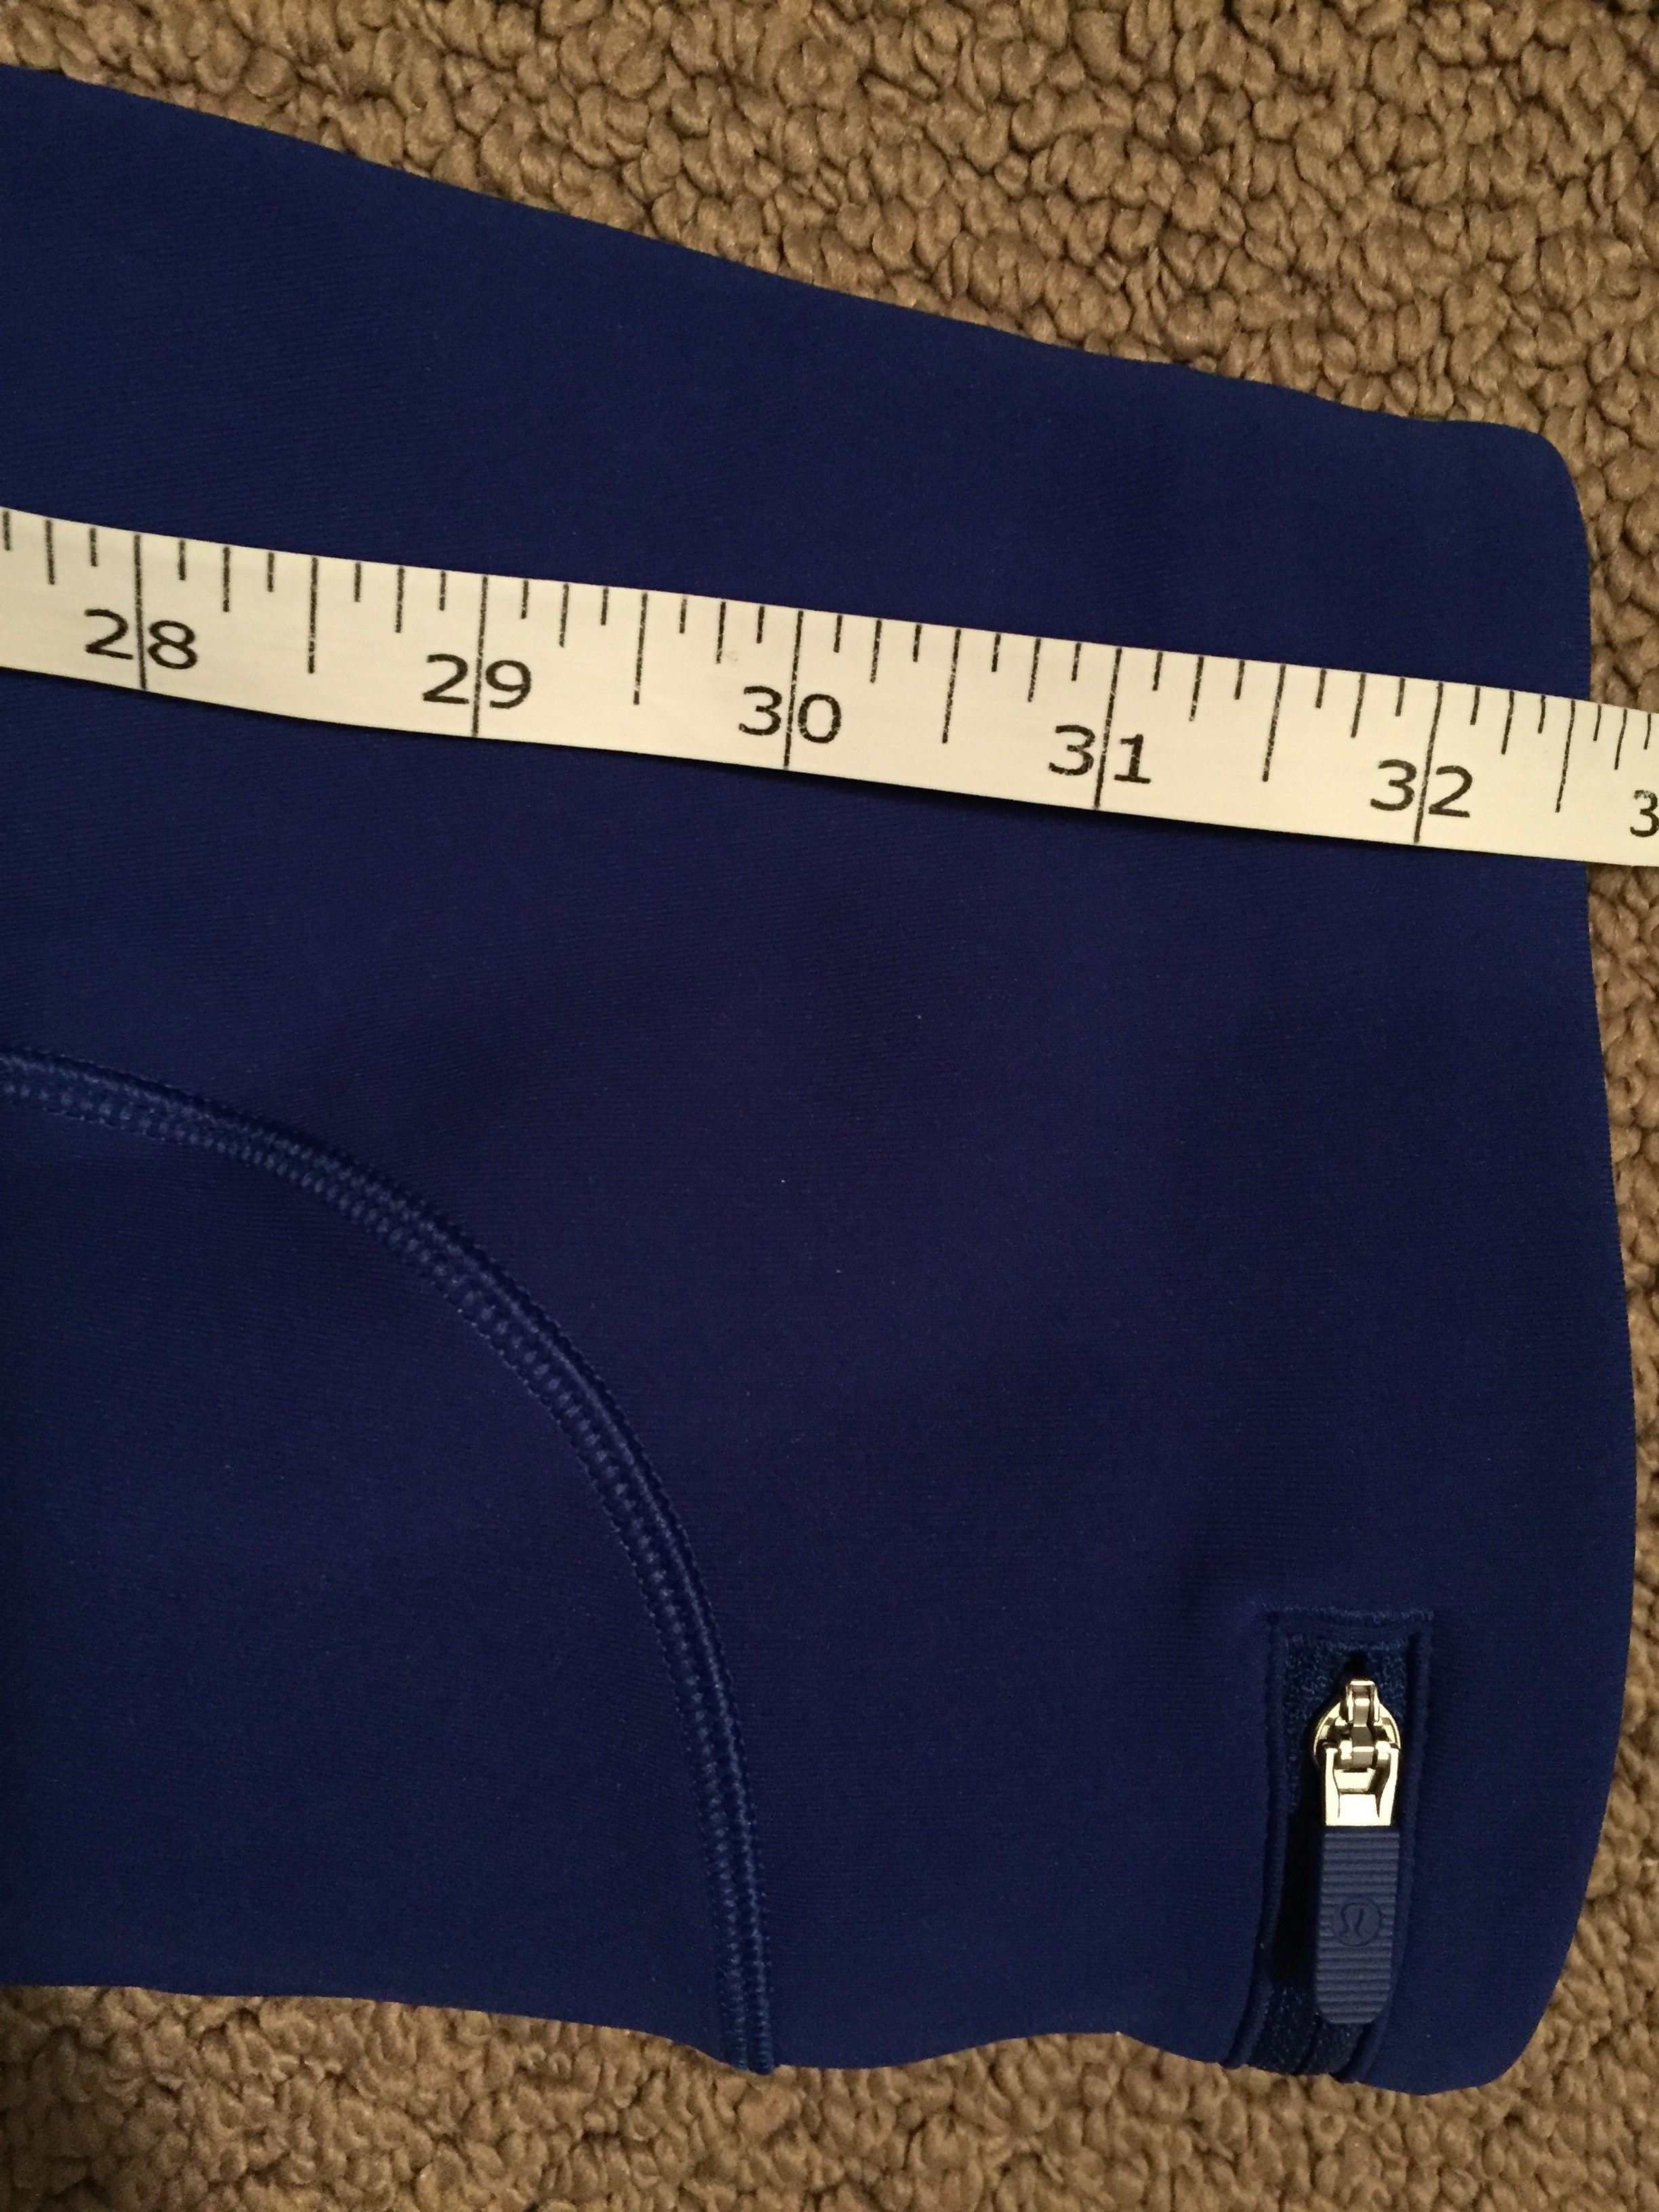 Lululemon Speed Up Tight Full-On Luxtreme Jet Stream - size 2 (excellent  condition, tags removed) from sweetcupcakes